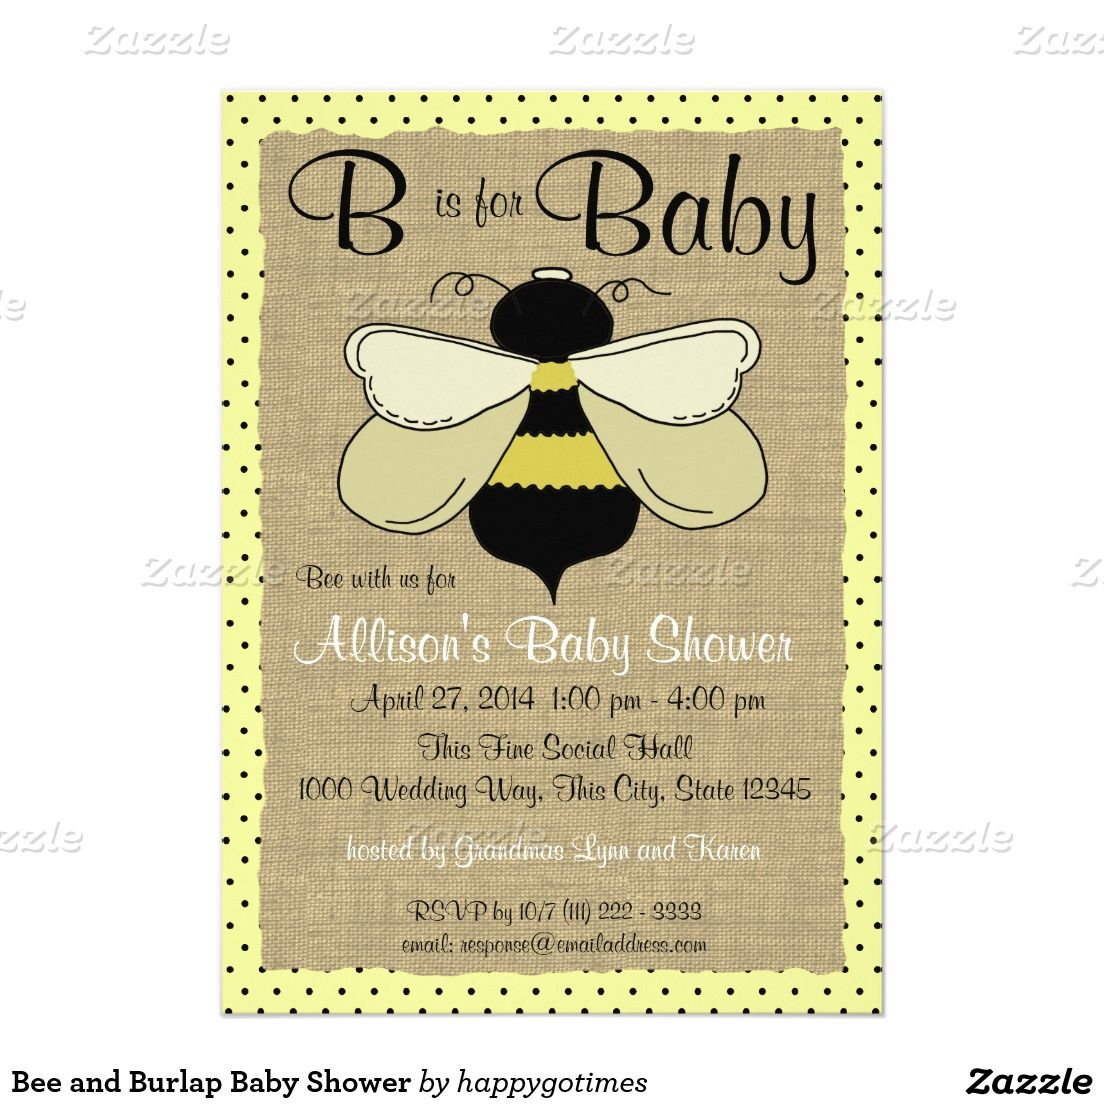 Bee and Burlap Baby Shower Invitation | Pinterest | Burlap baby ...